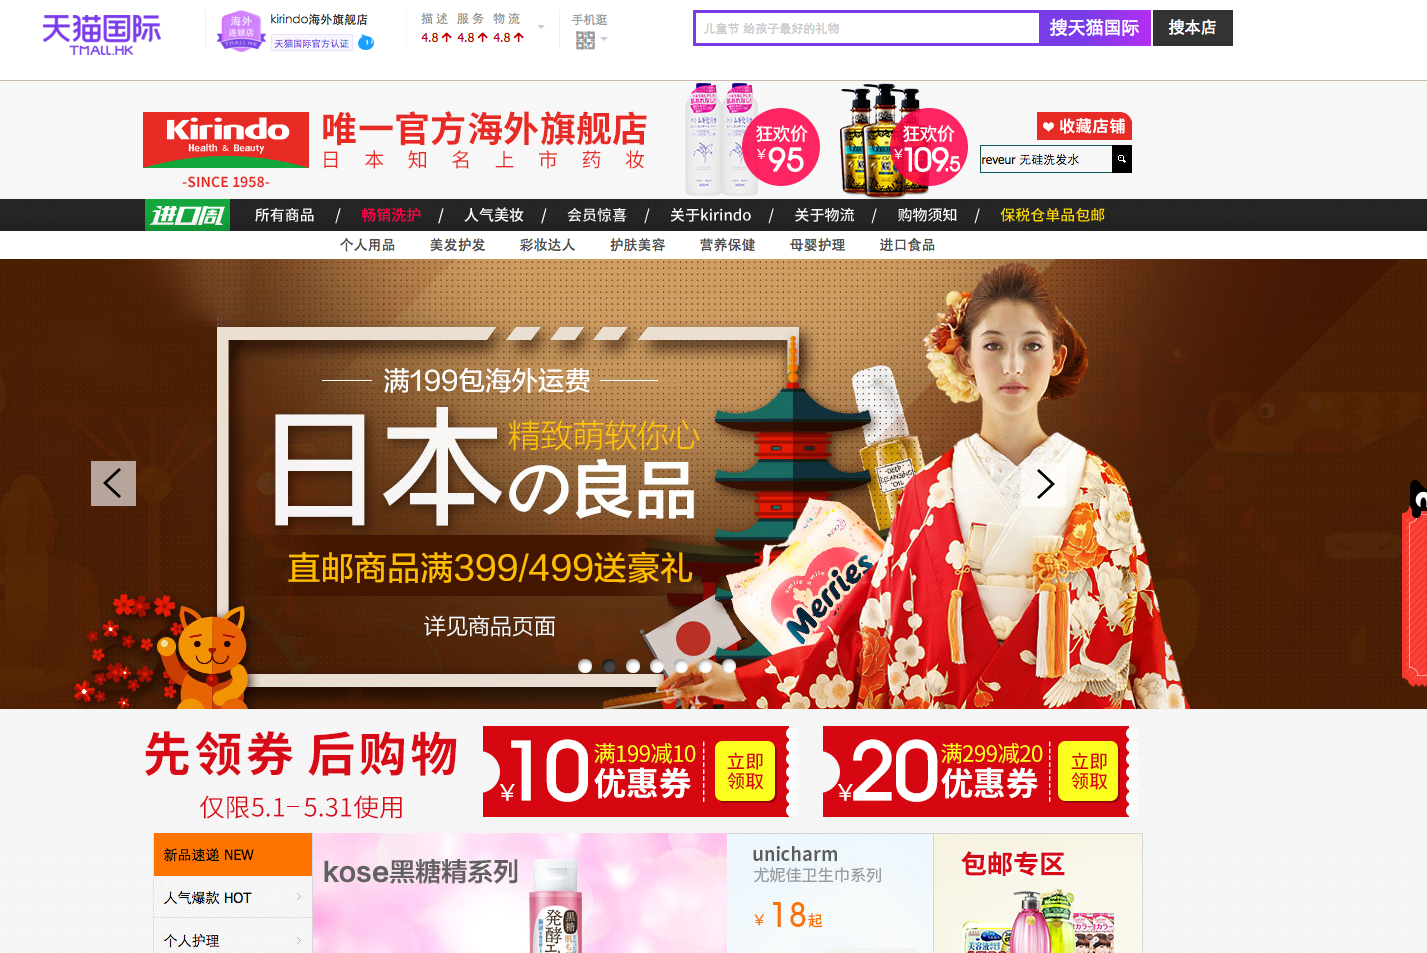 Japan brand China eCommerce